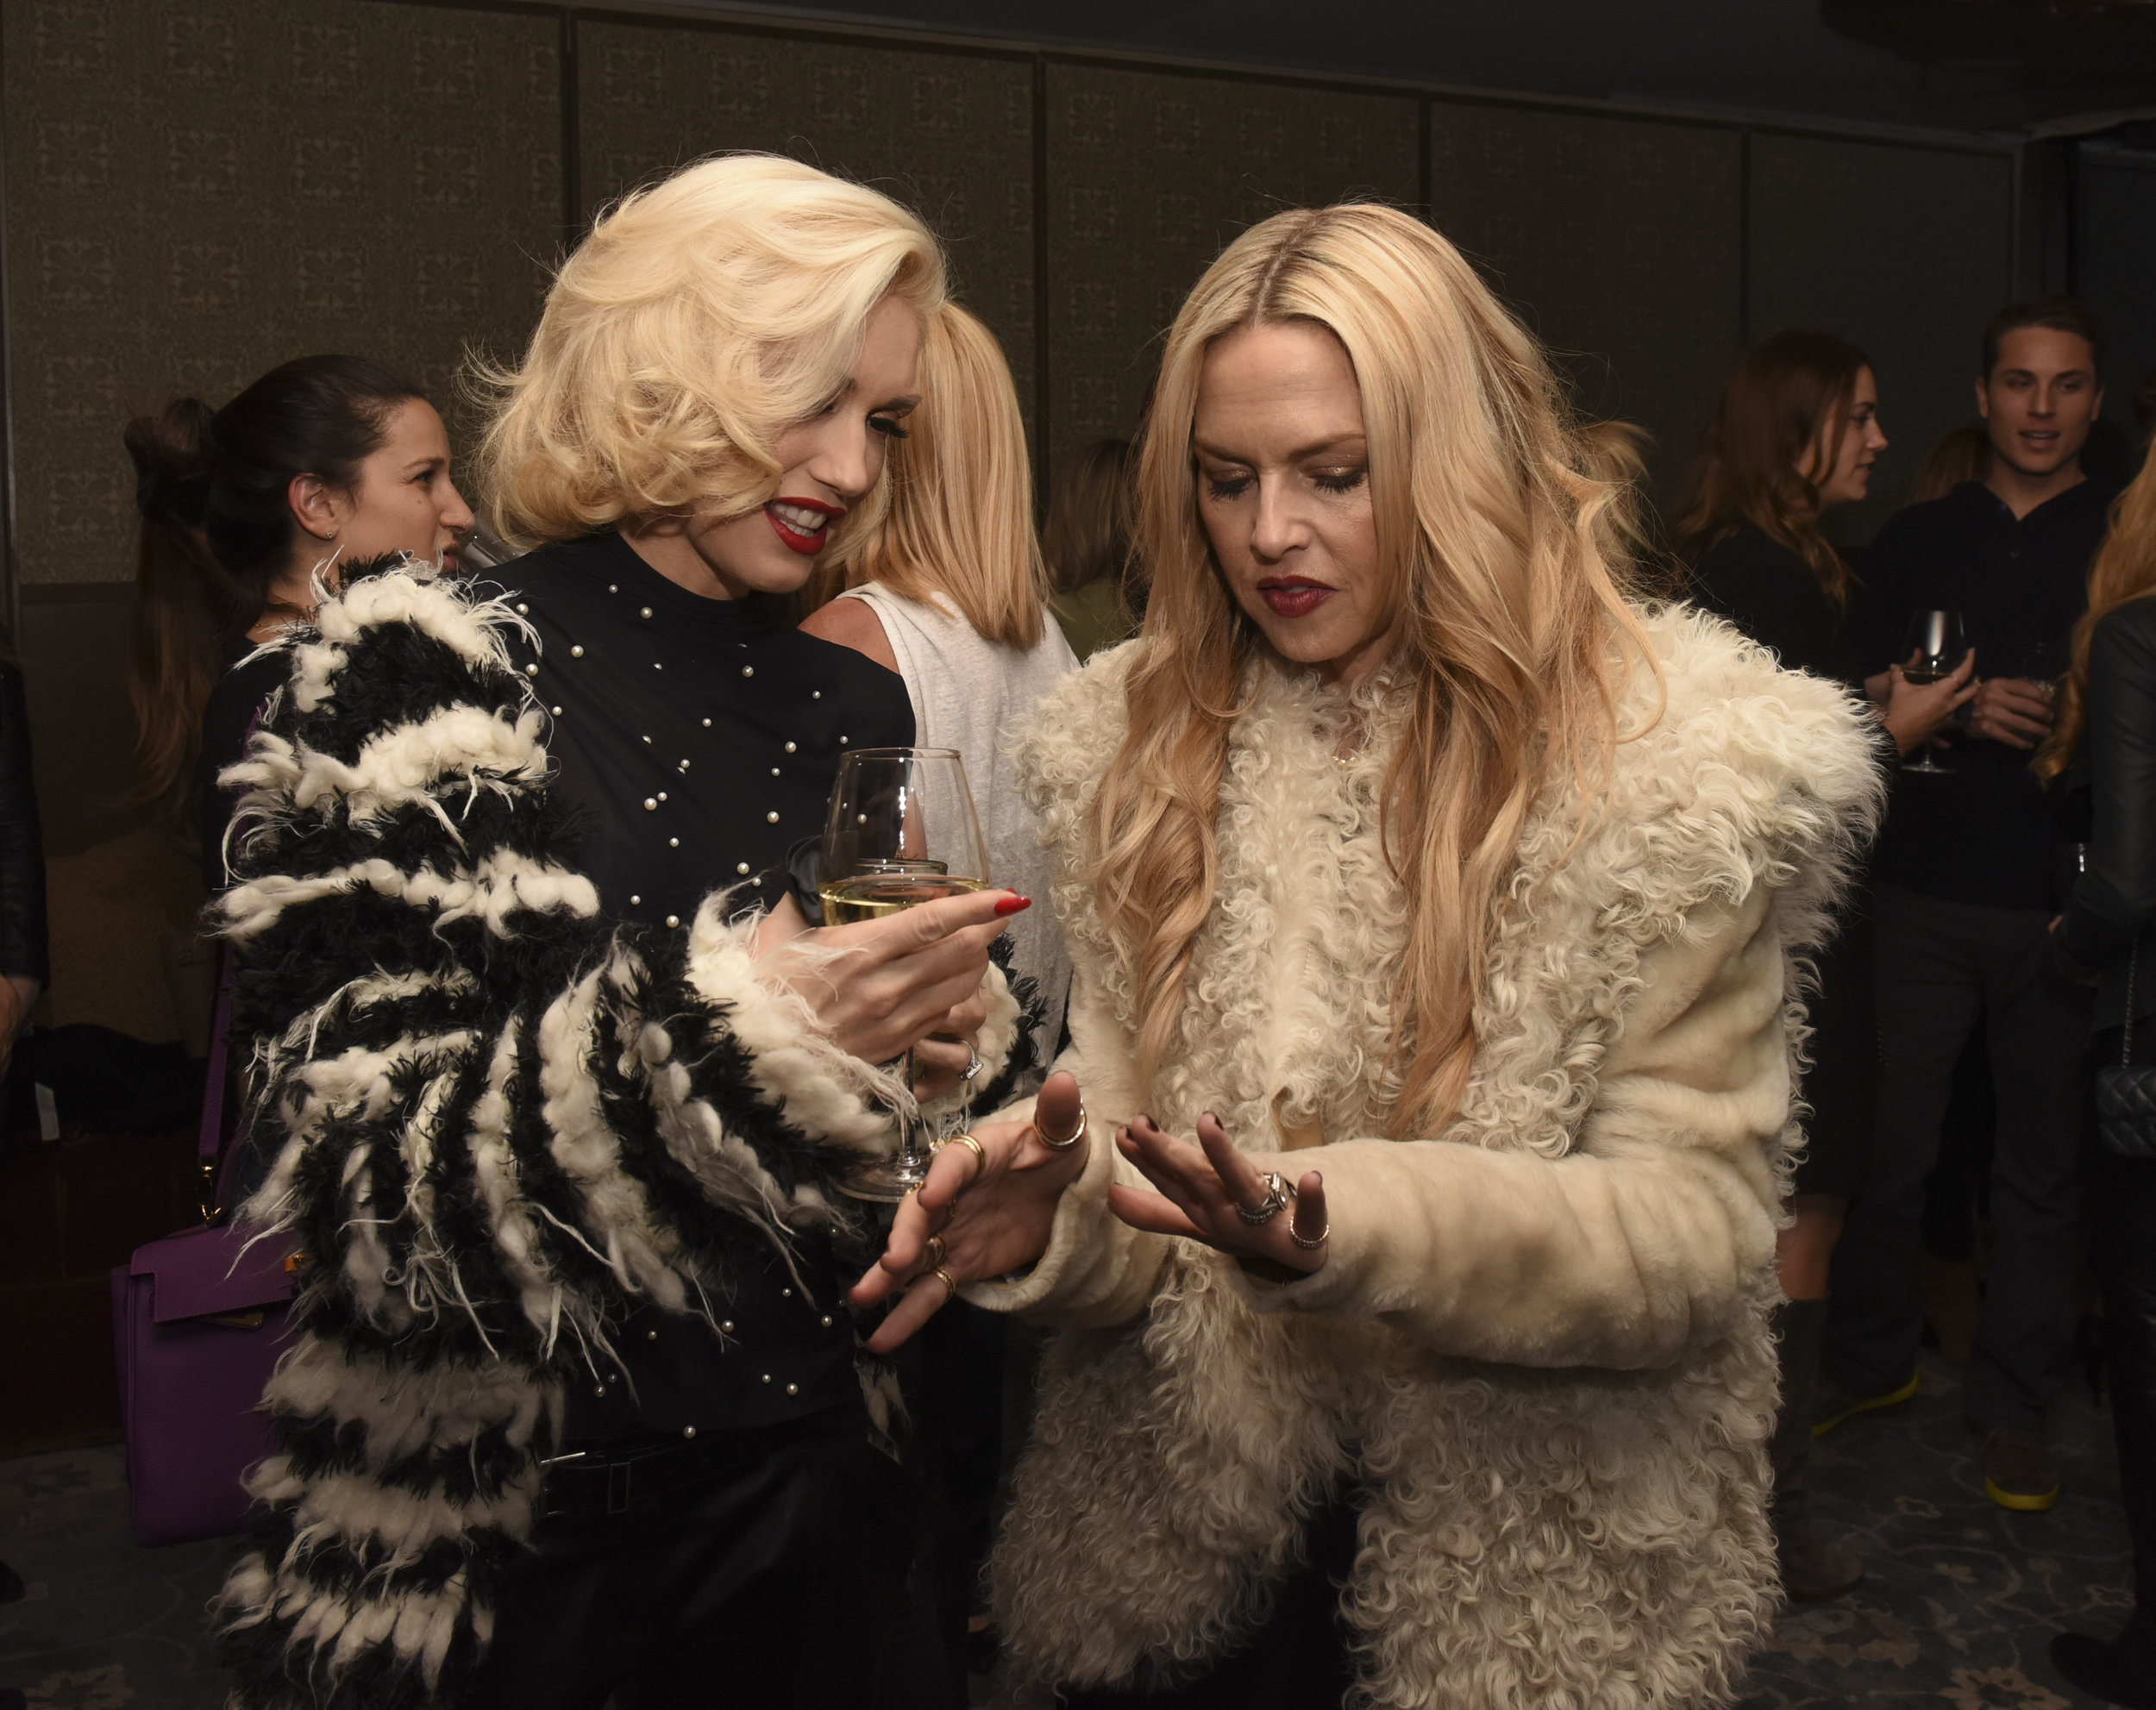 Gwen Stefani and Rachel Zoe admire the rings.